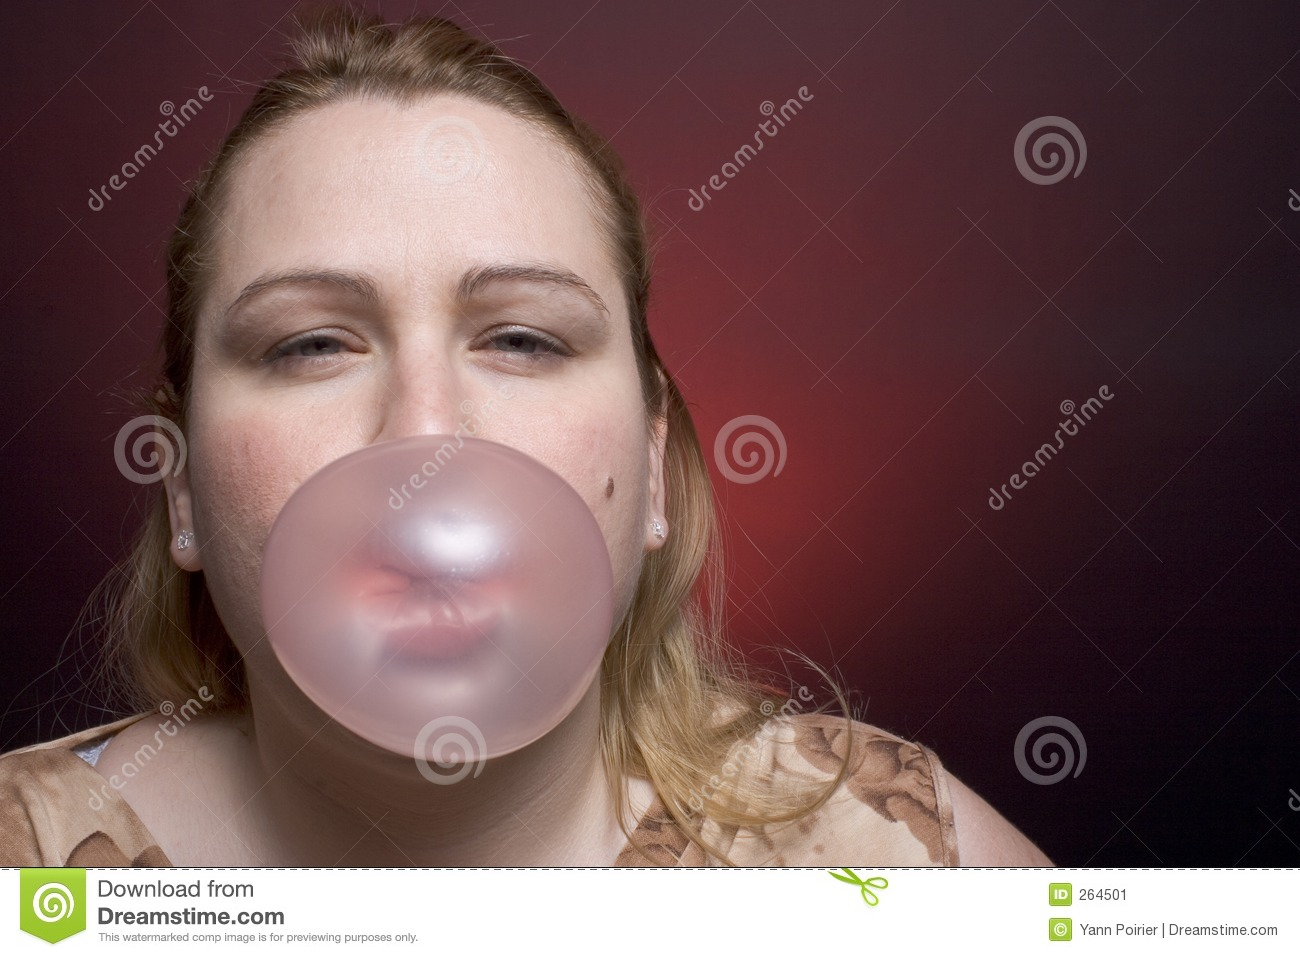 Big bubble women pics xxx photos